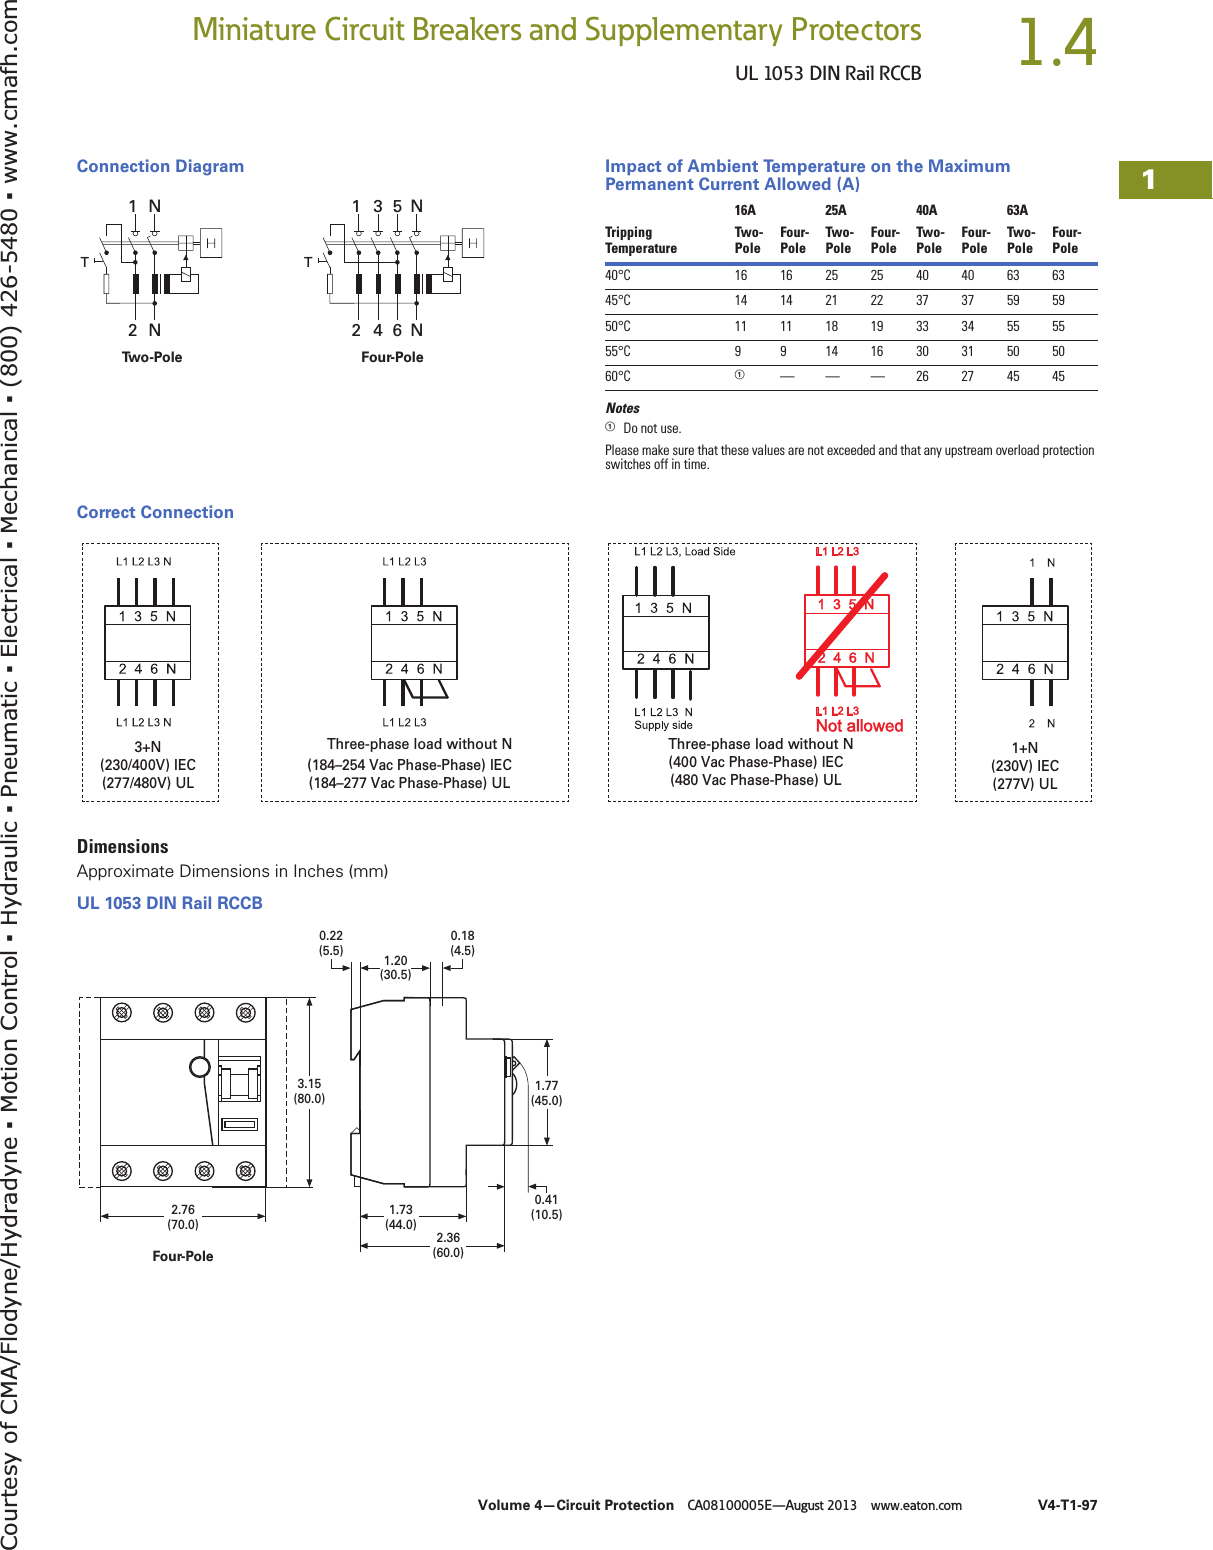 Eaton Rccb 152183 Catalog 1 Wiring Diagram Page 11 Of 12